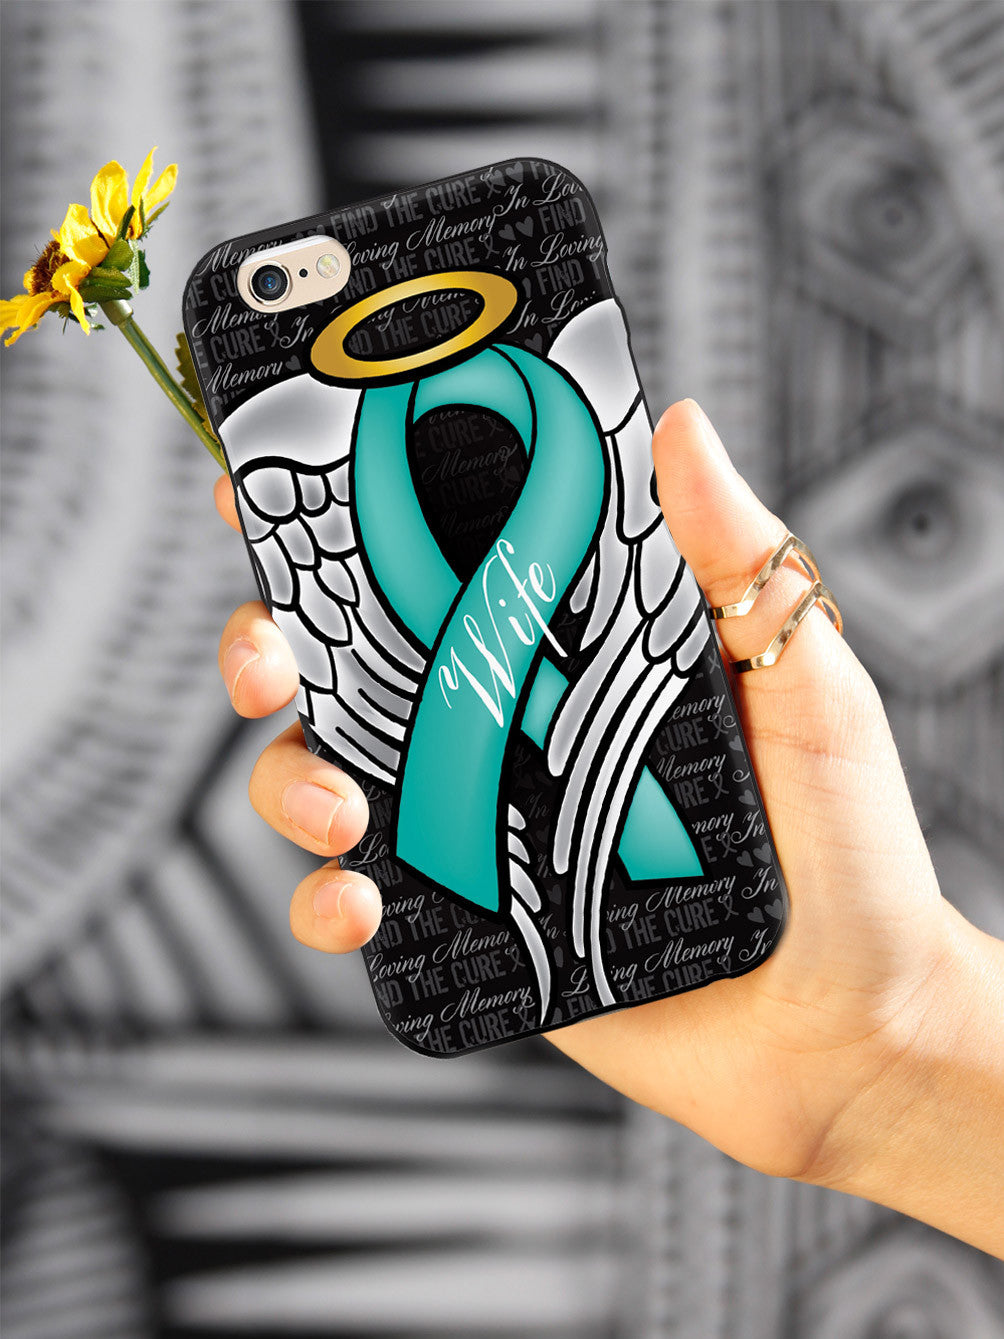 In Loving Memory of My Wife - Teal Ribbon Case